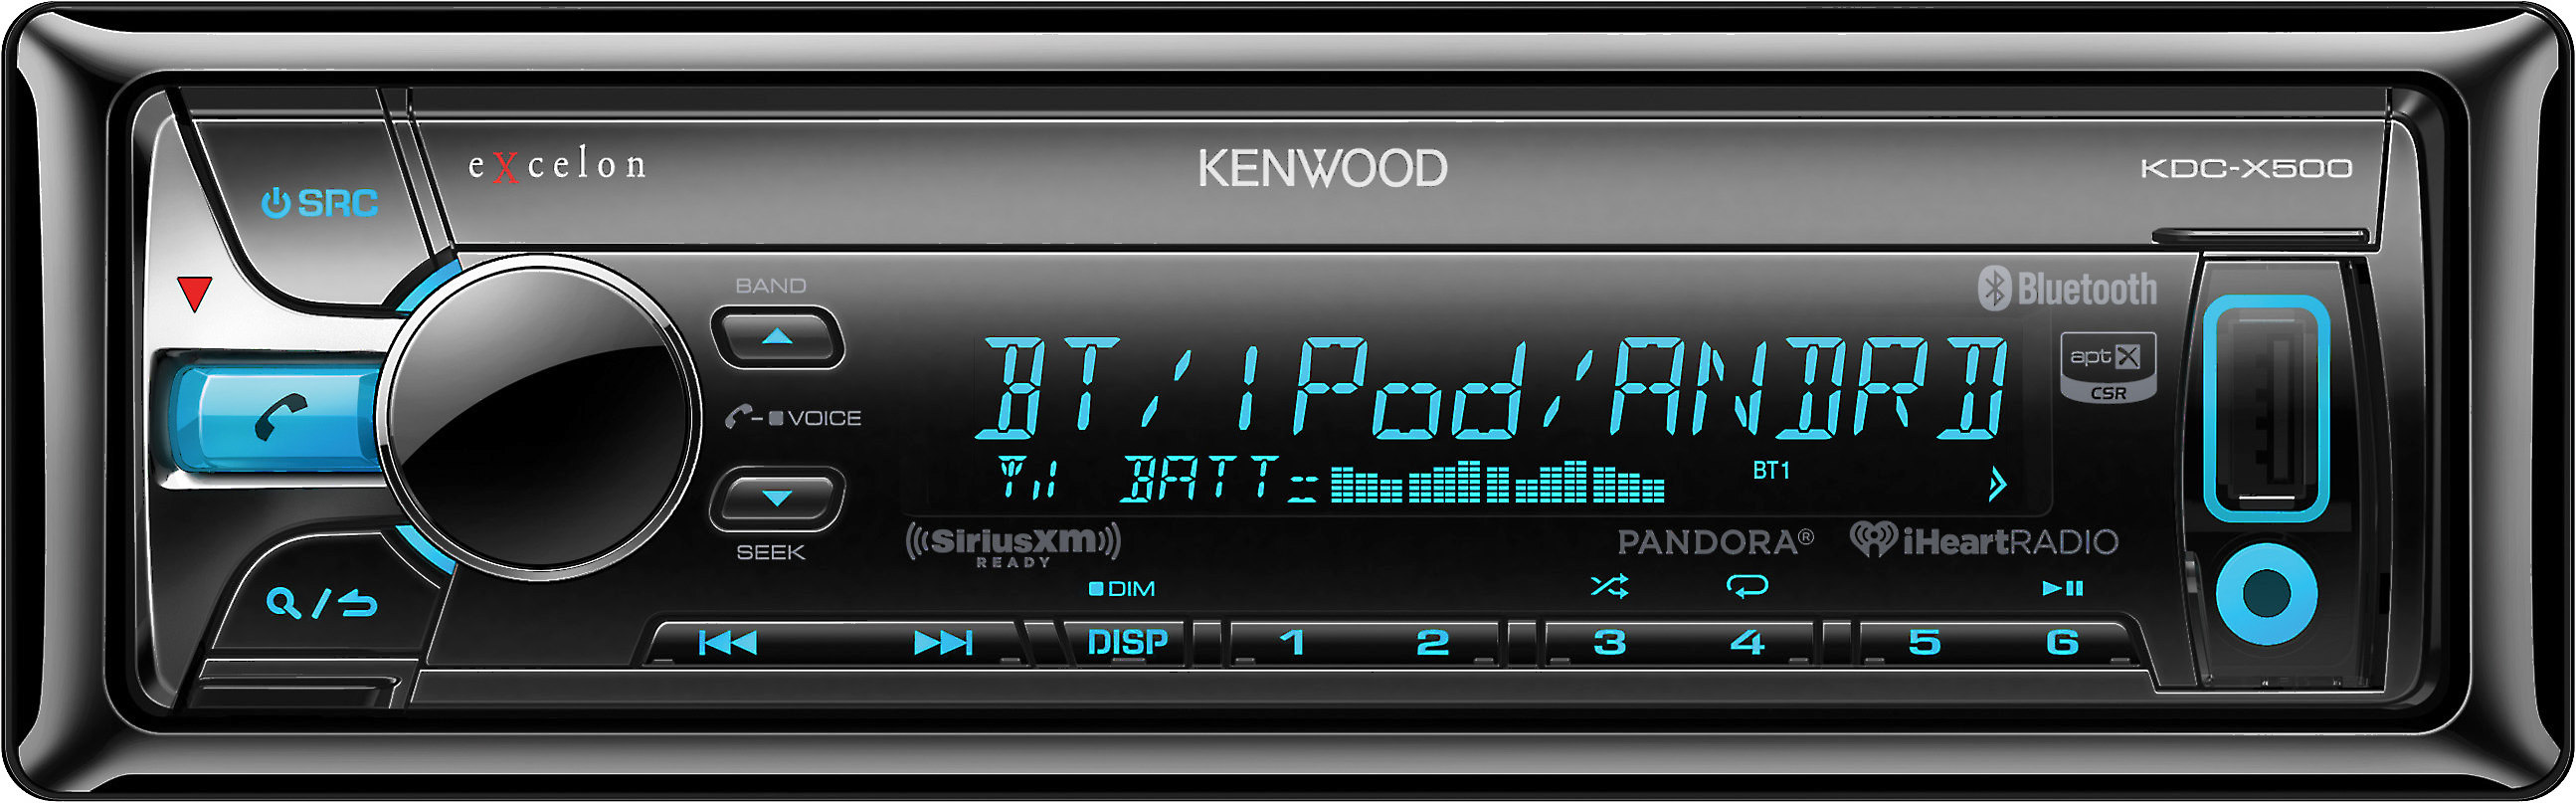 Kenwood Excelon KDC-X500 CD receiver at Crutchfield on